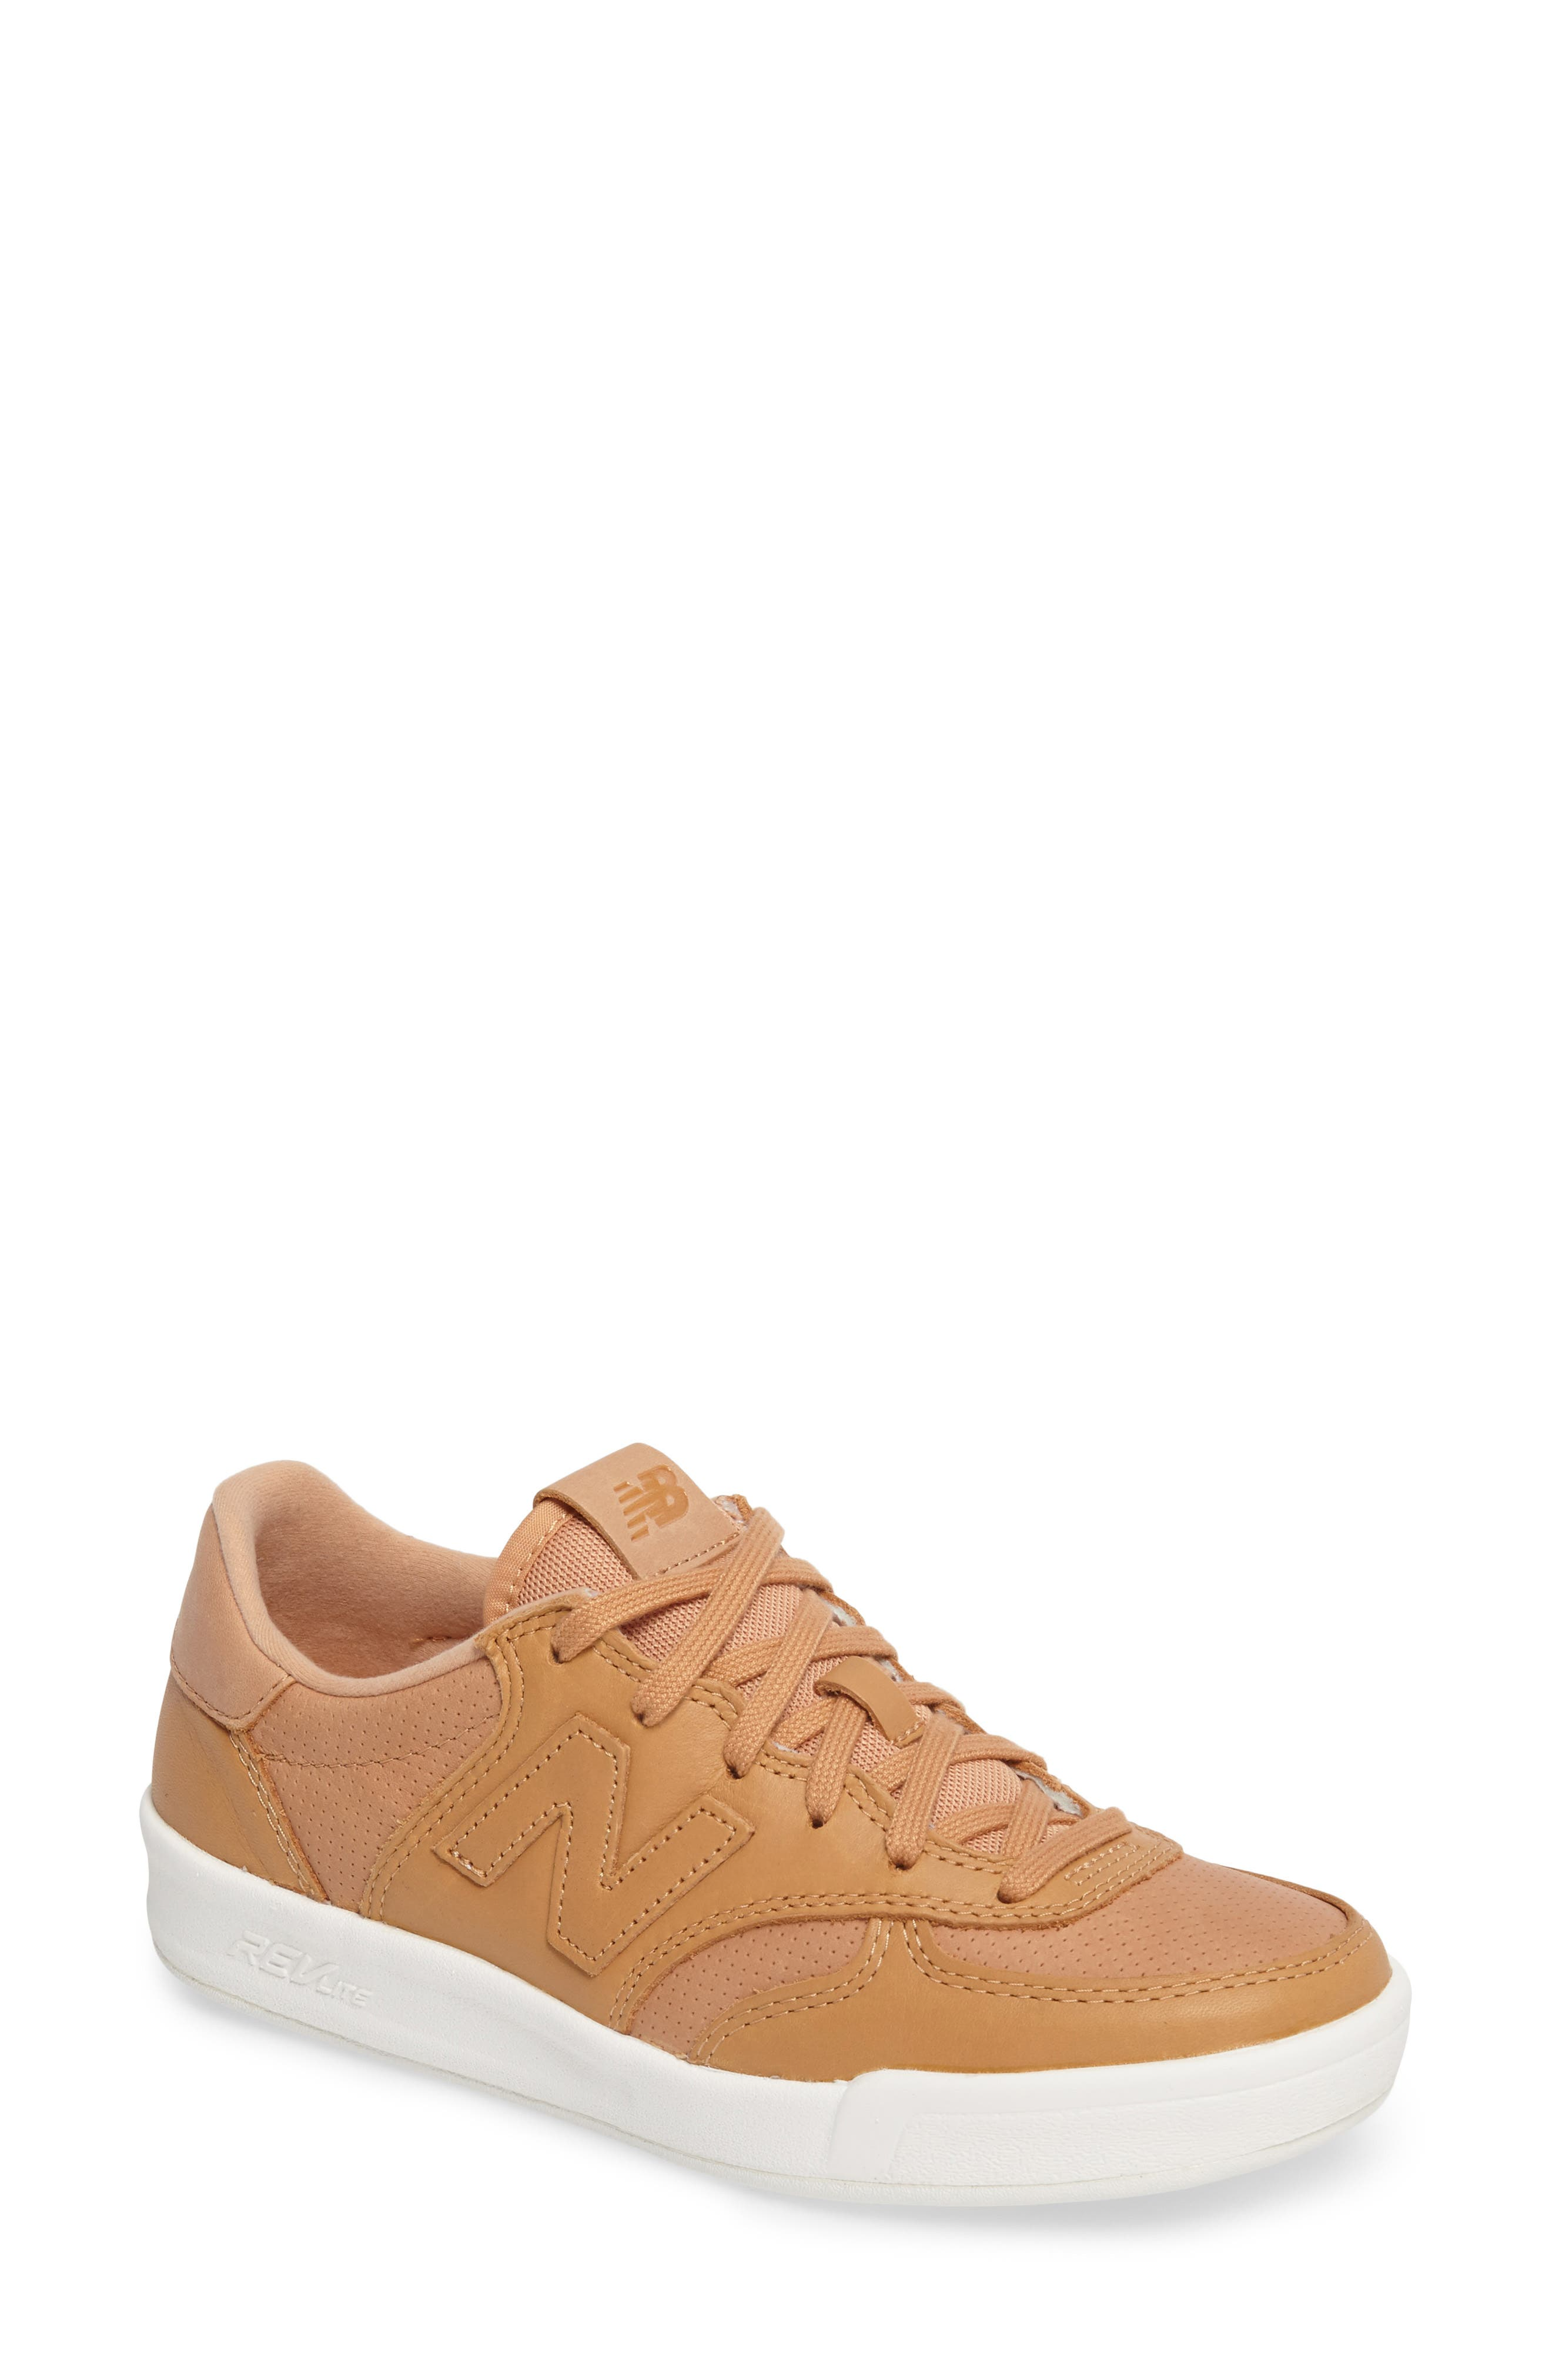 New Balance 300 Sneaker (Women)